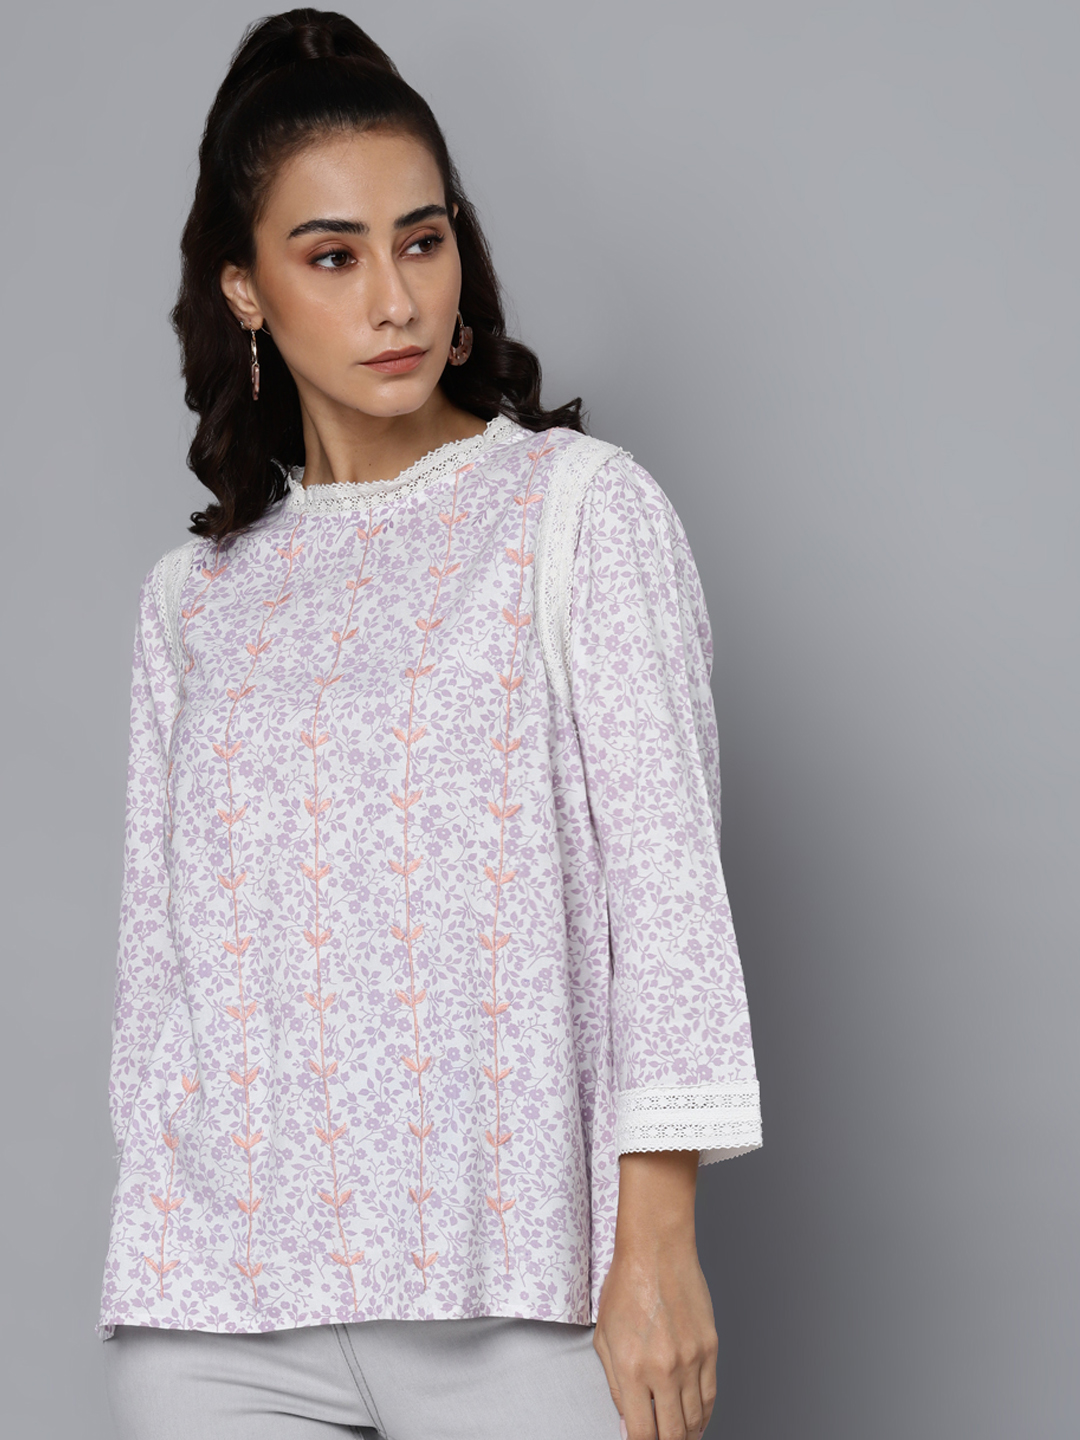 Printed Embroidered & Lace Detail Top